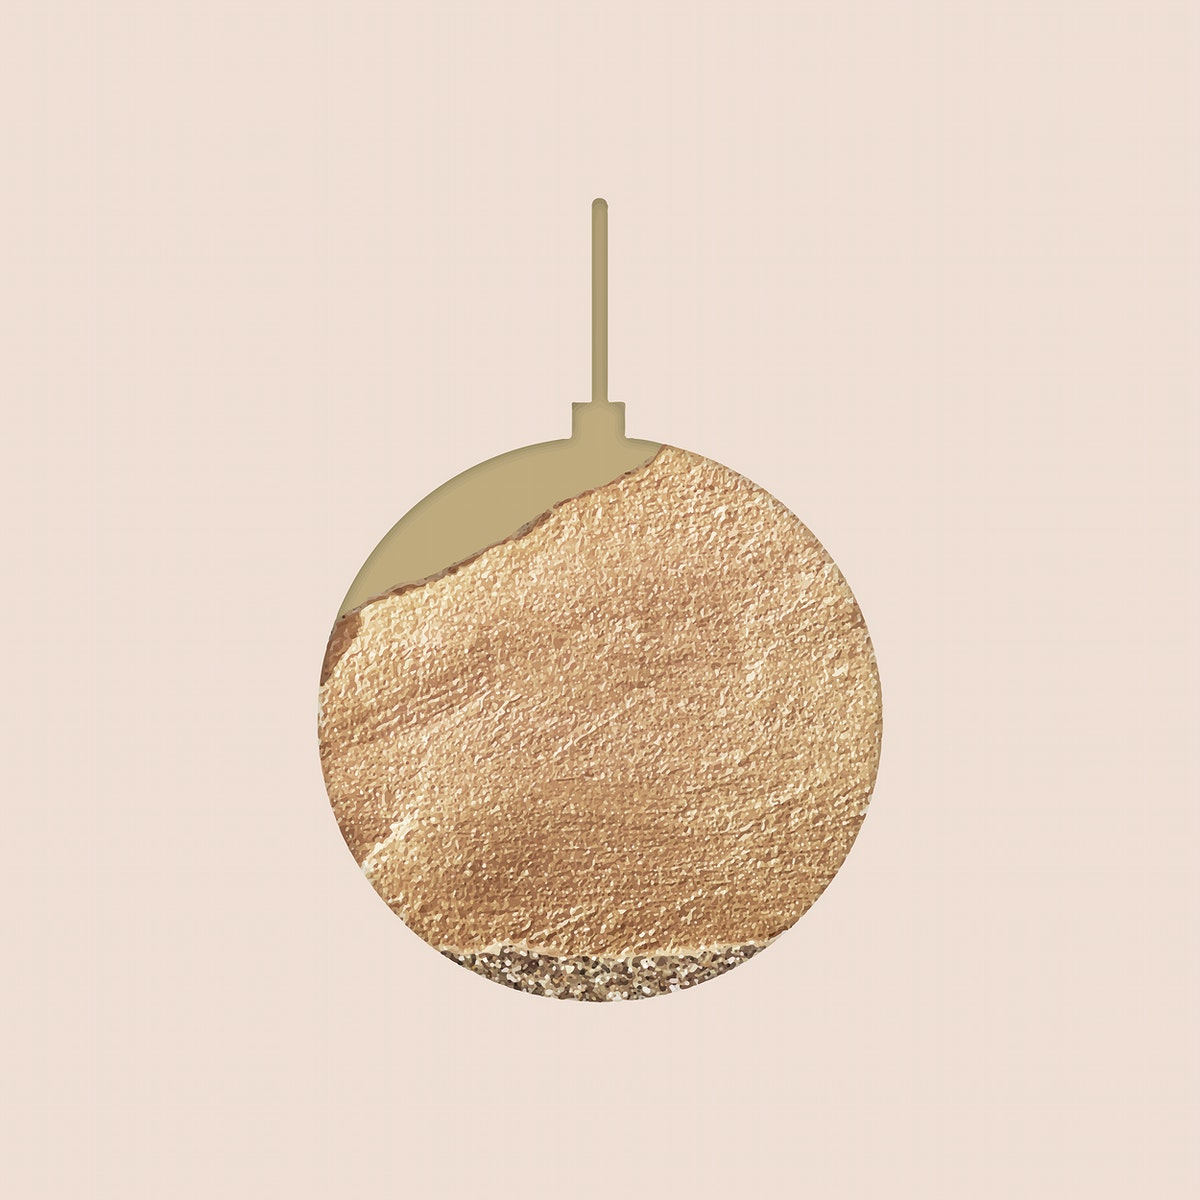 New Year gold ball doodle on beige background vector